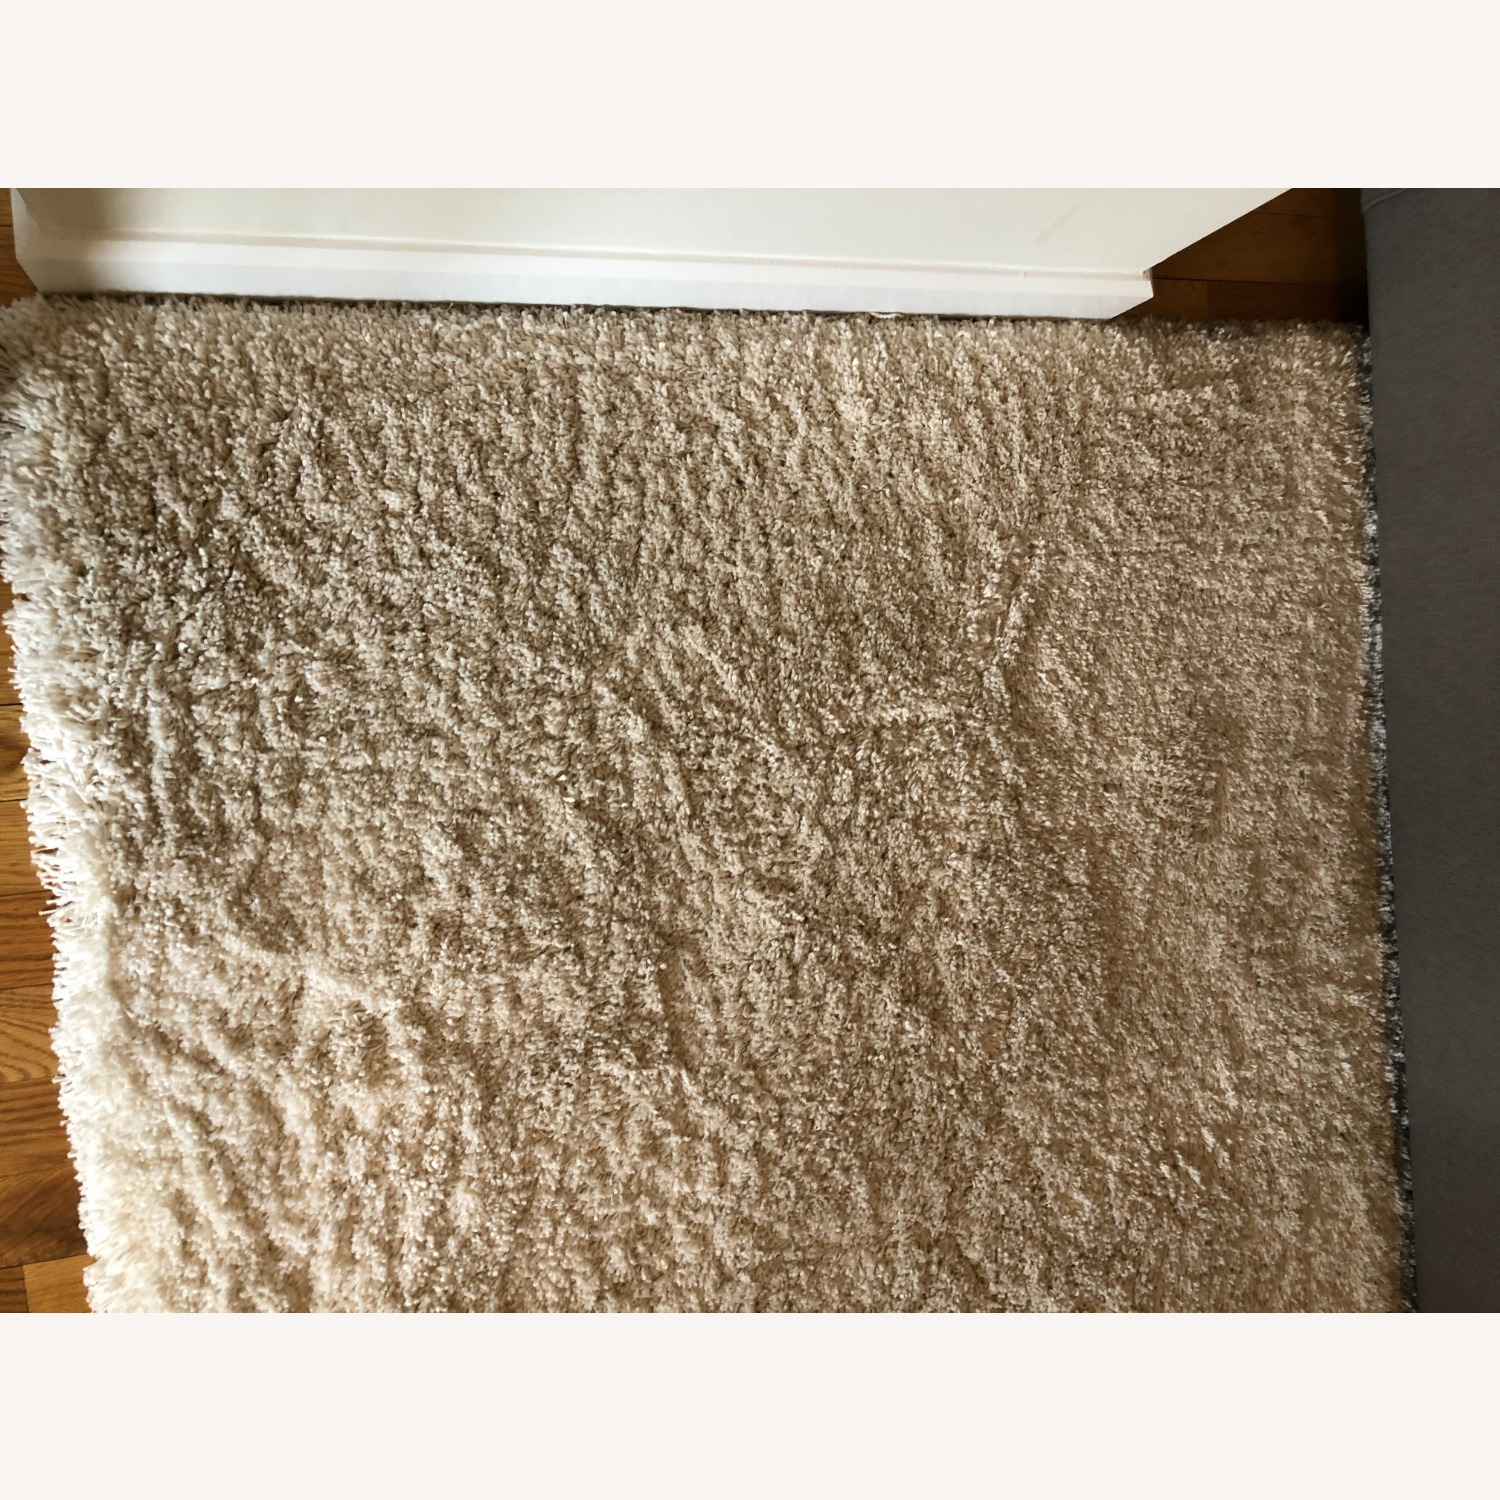 Crate & Barrel Memphis White 5x8' Rug - image-4